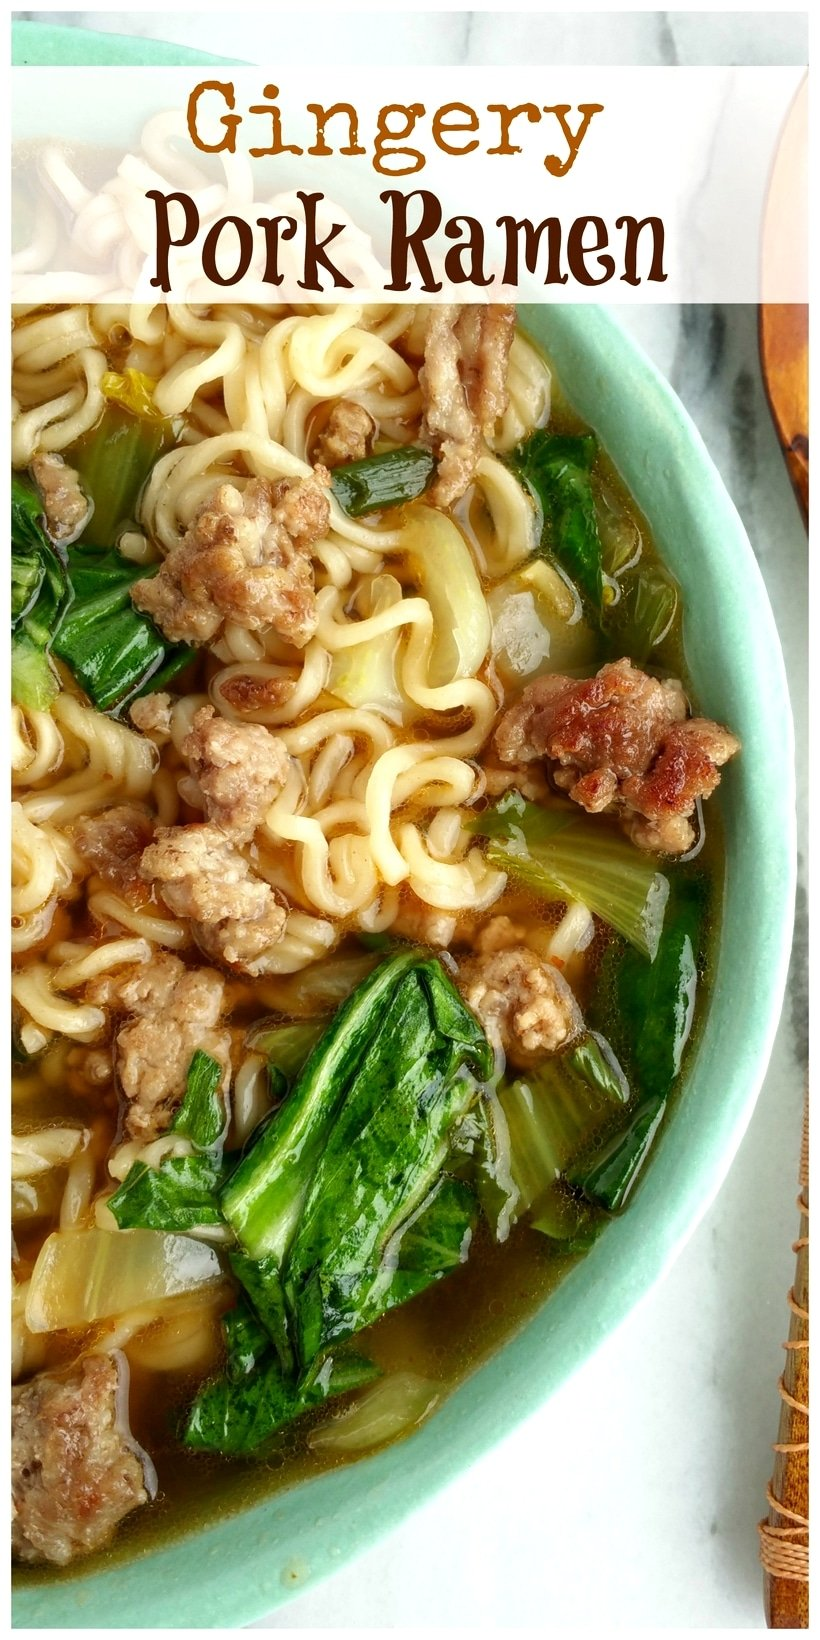 A life-changing Gingery Pork Ramen recipe because honestly, it's going to rock your world. The ground pork turns this ramen into a hearty meal with a pop of flavor you've never quite tasted before. This pork ramen is one of the first meals my son requests when he returns home from college because it's that good, not to mention so easy to make. via @cmpollak1